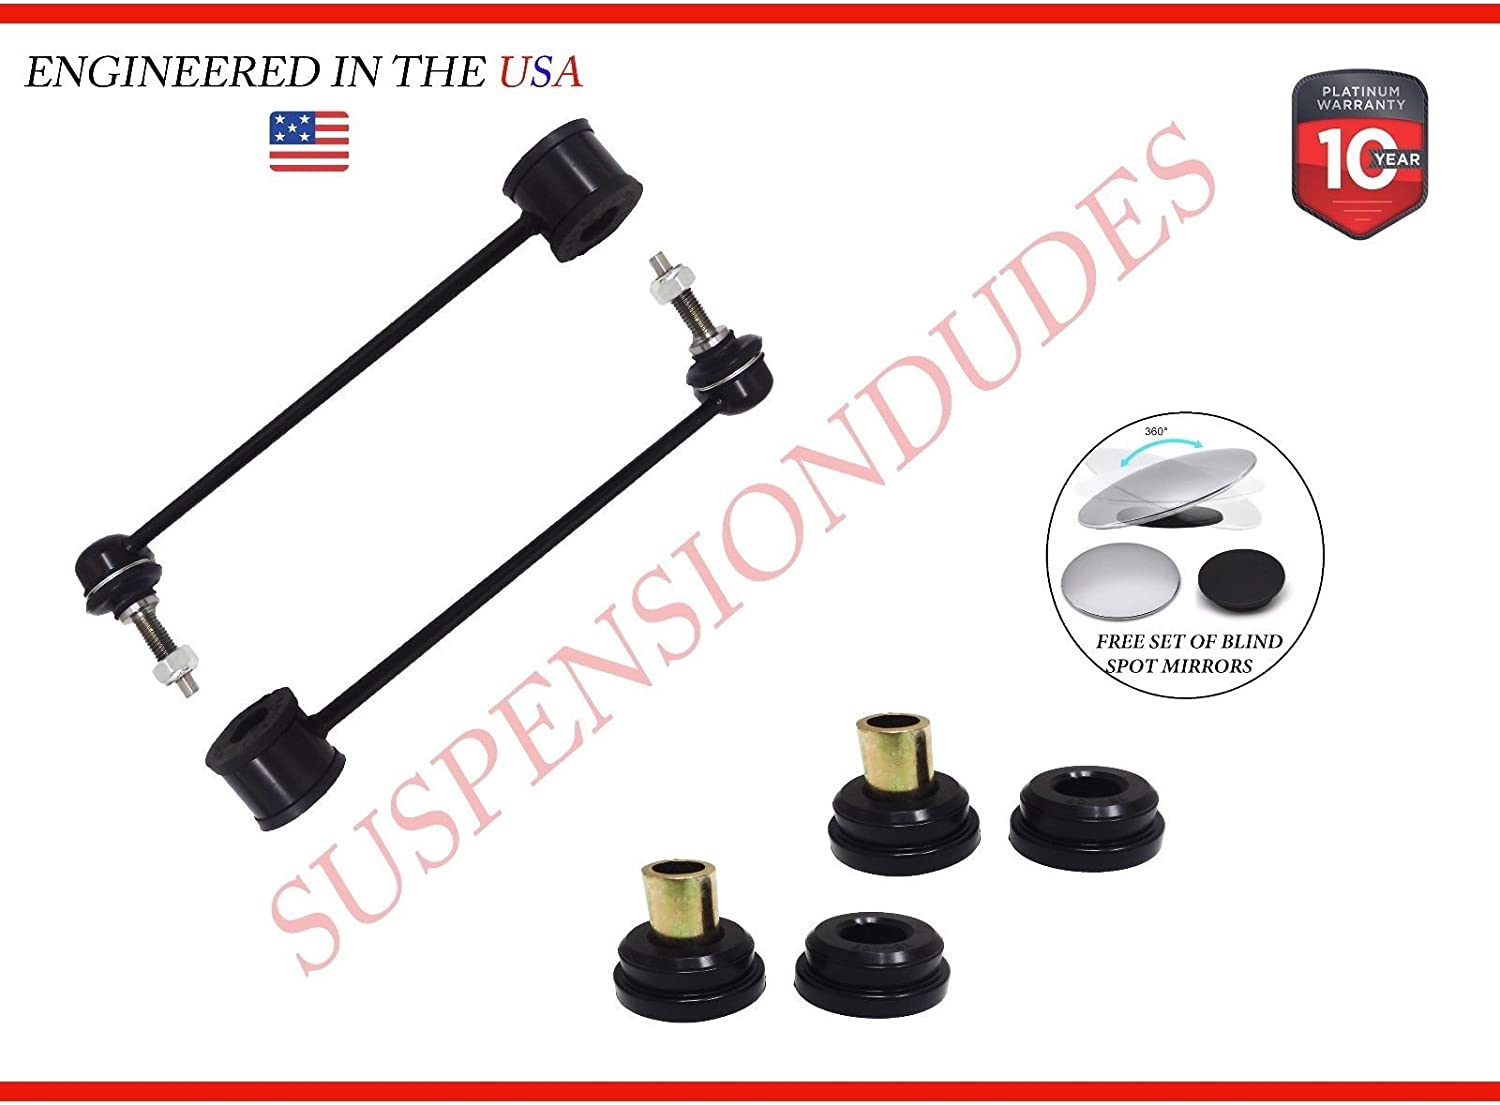 4PC Front Sway Bar Links+Bushings 2007-15 Jeep Patriot 2007-11 Dodge Caliber